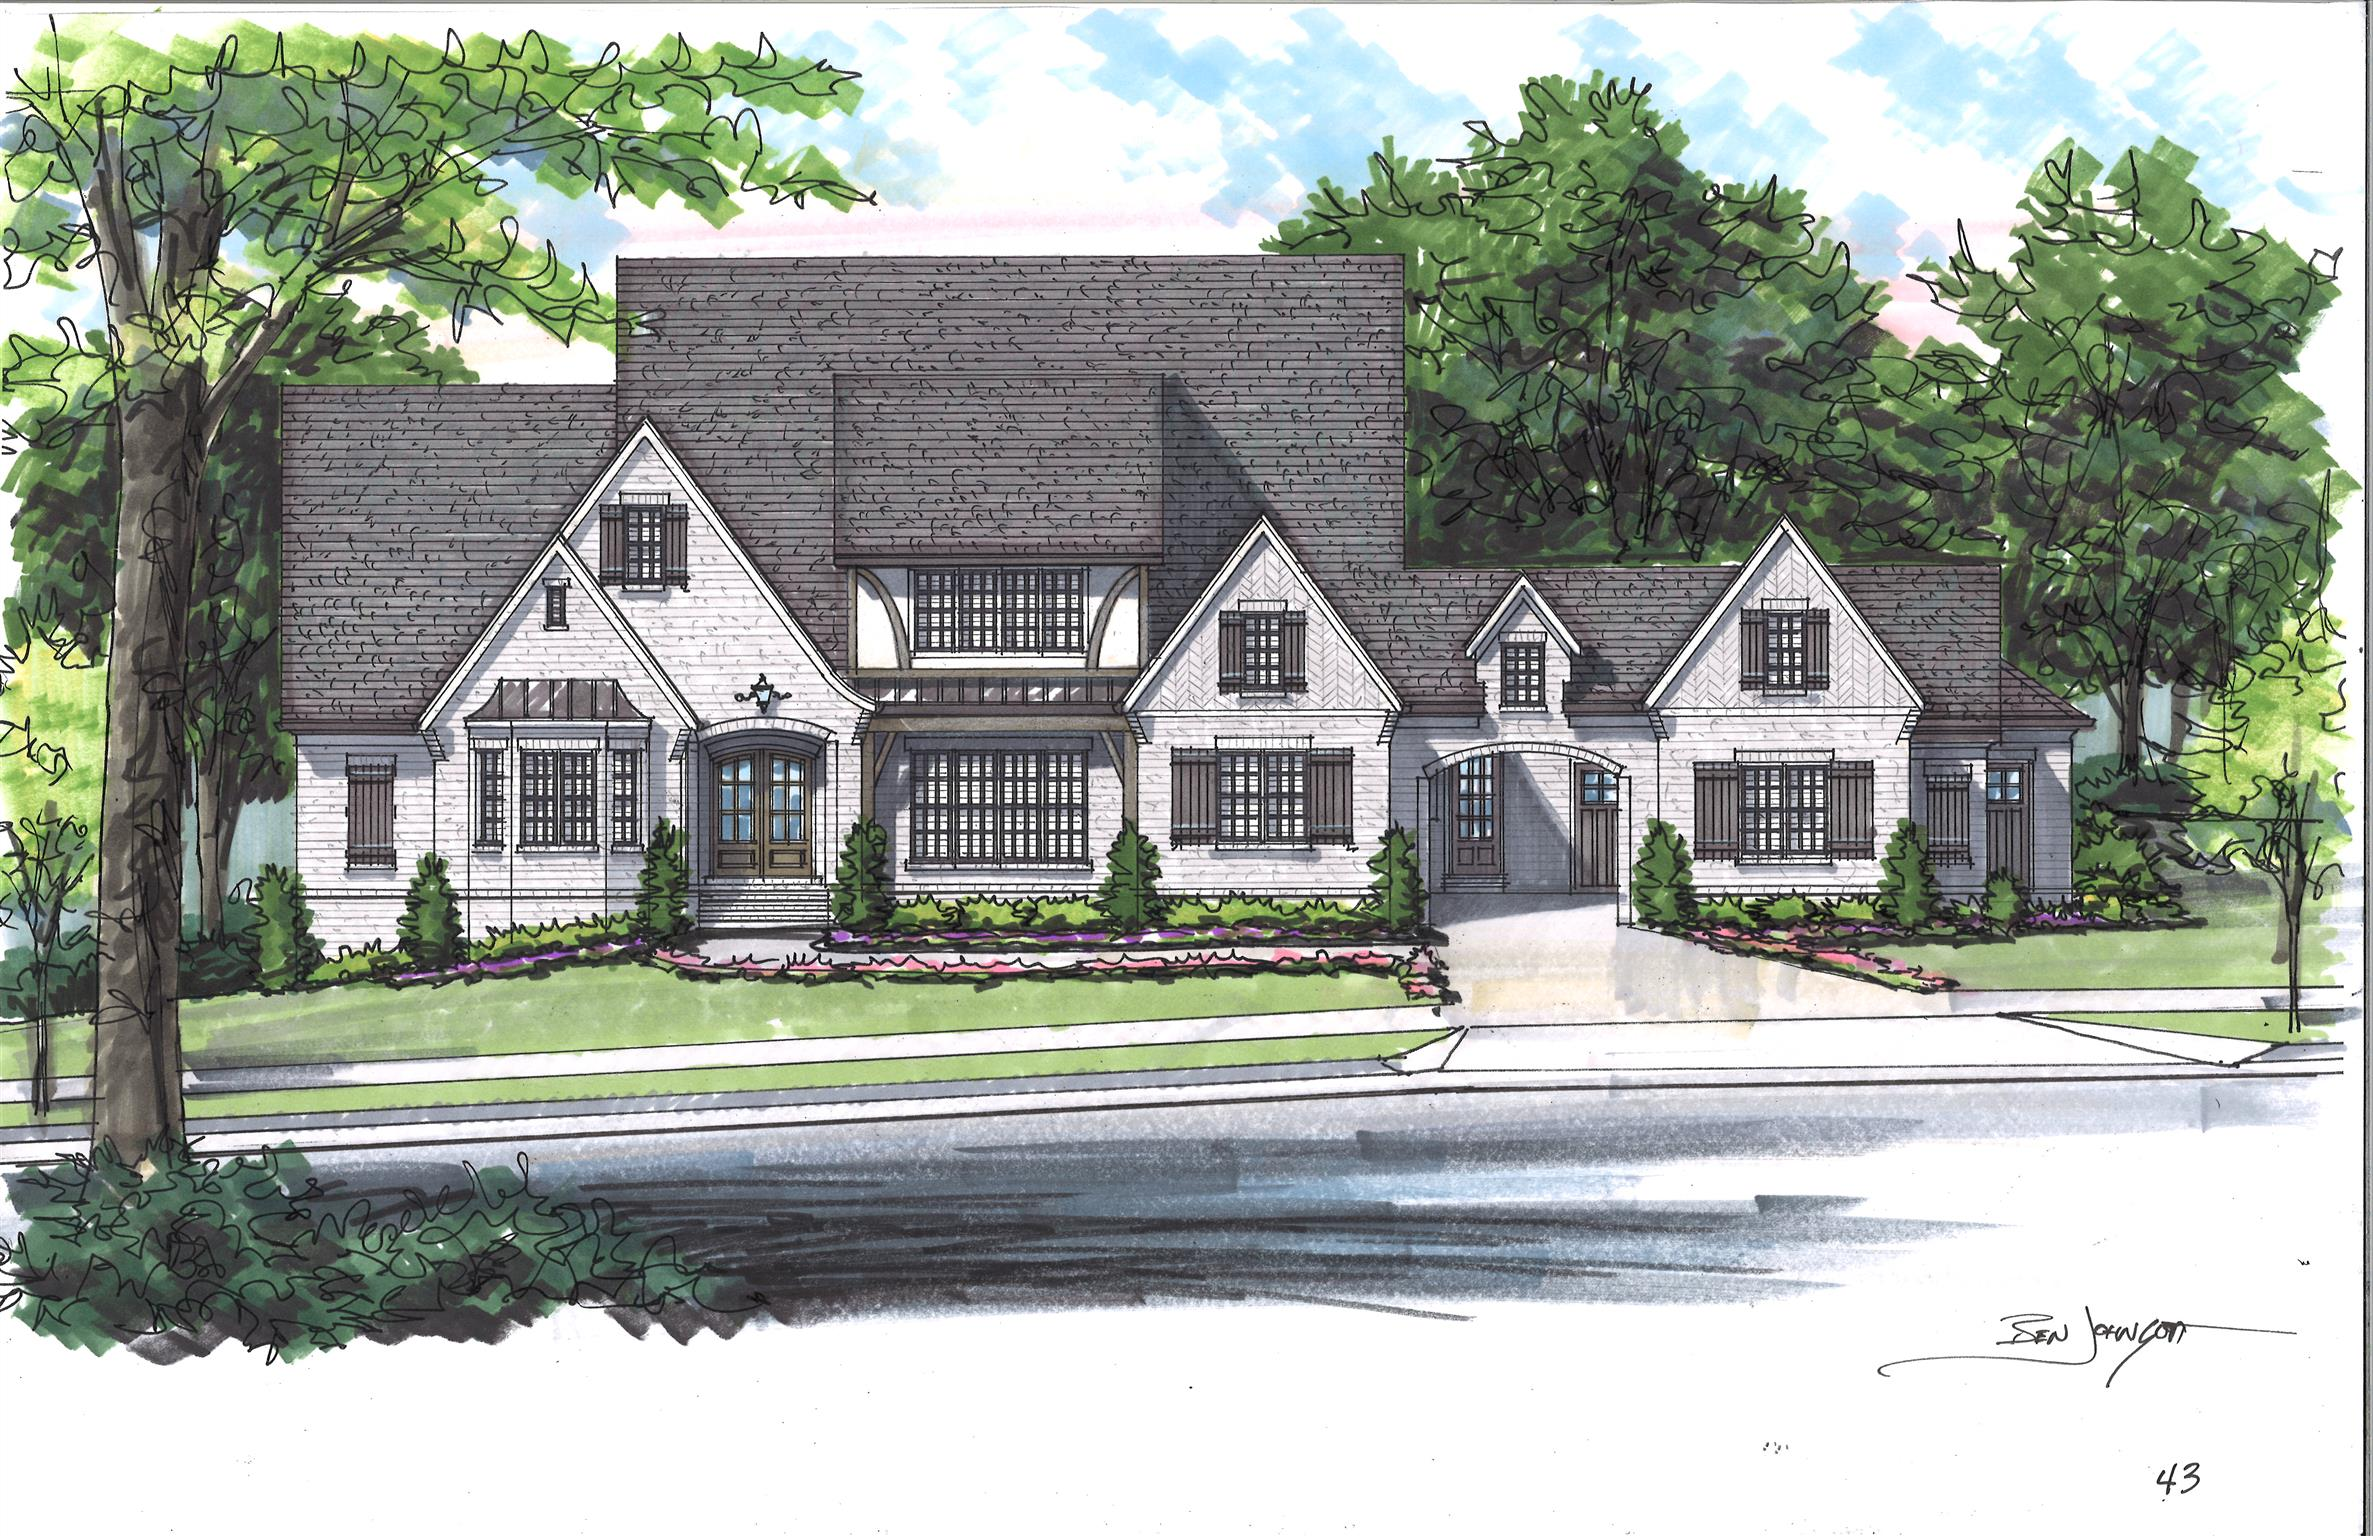 9244 Lehigh Dr (Lot 43), Brentwood, TN 37027 - Brentwood, TN real estate listing